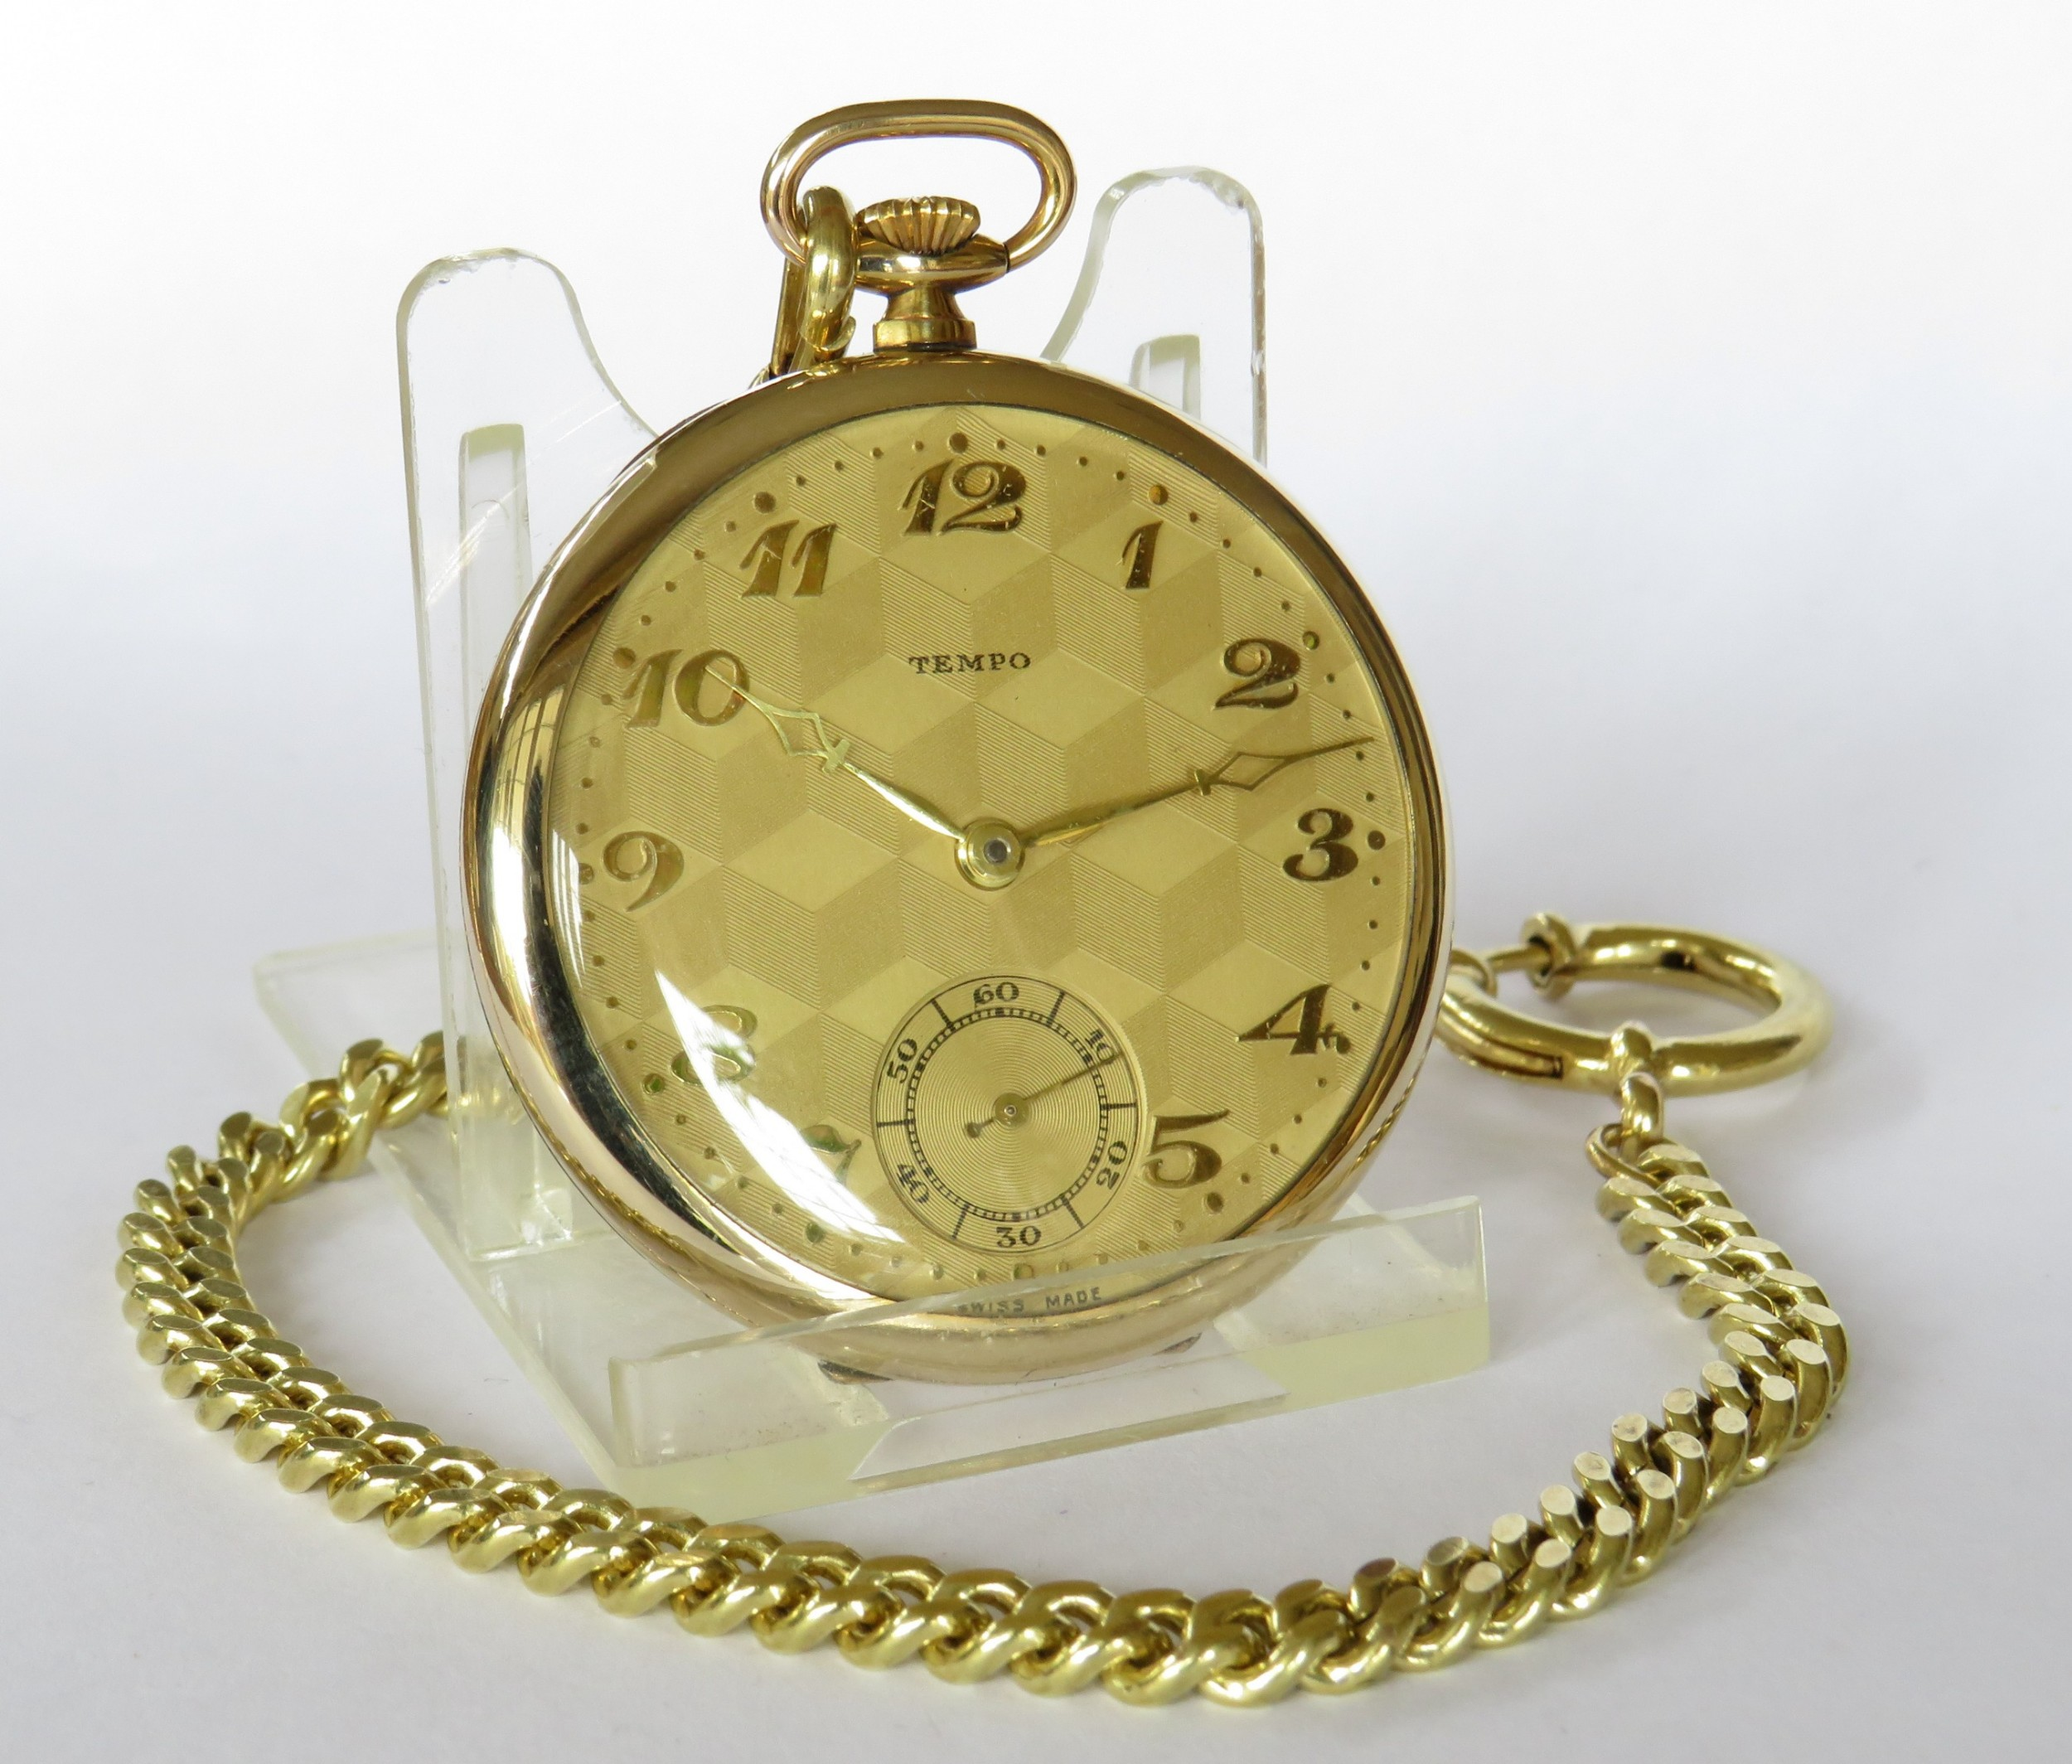 a 1930s tempo pocket watch chain